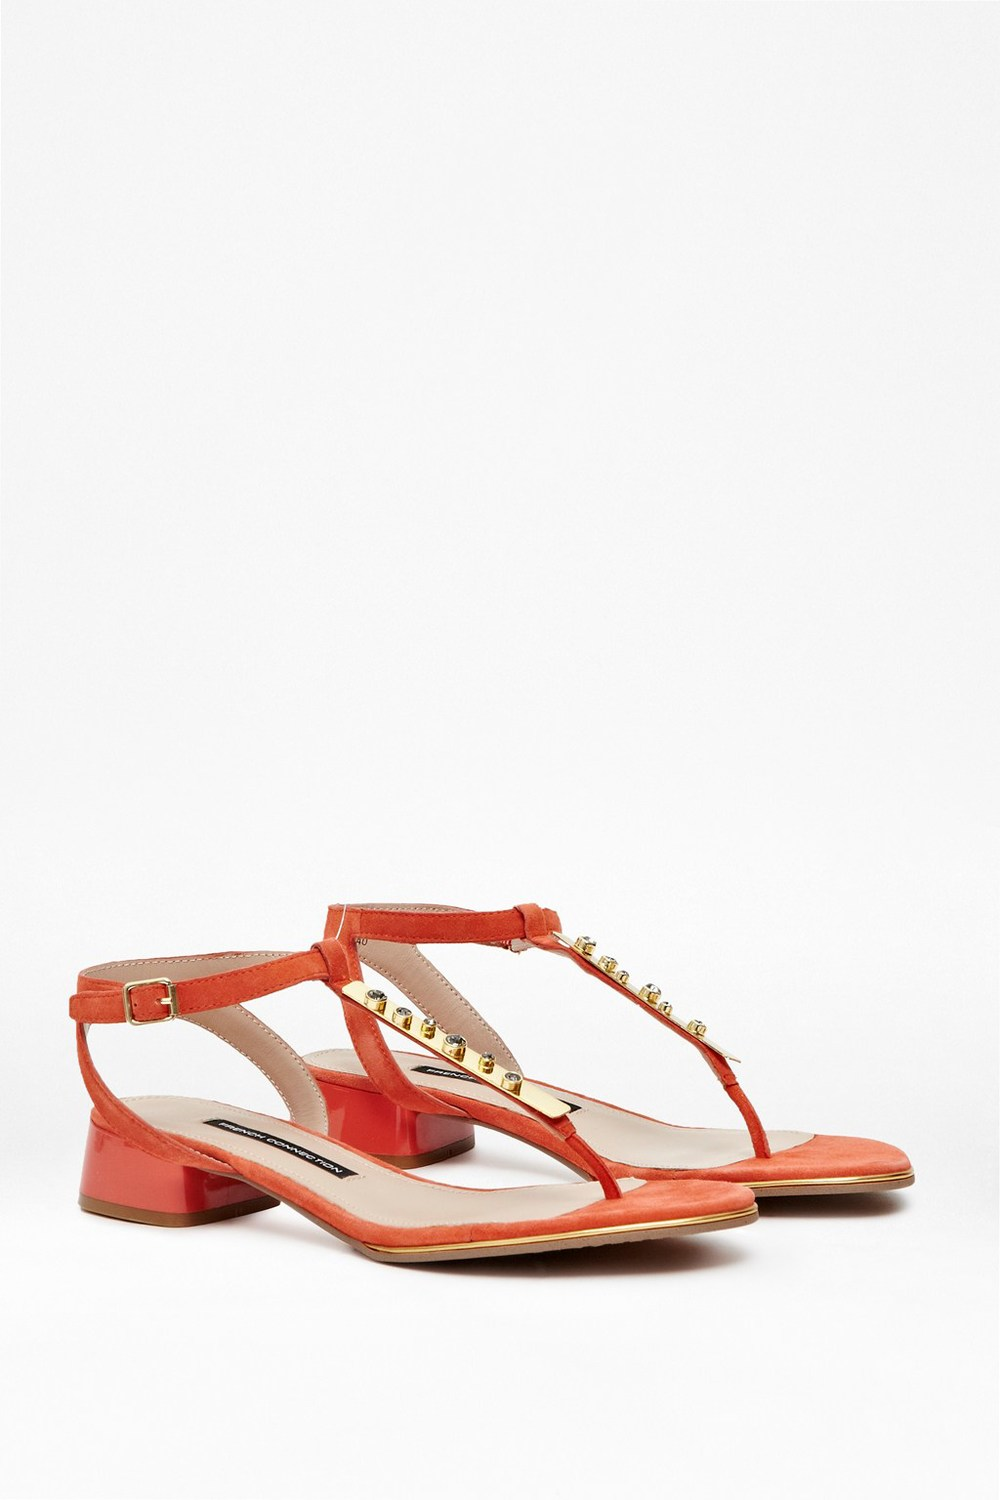 French Connection - Cole Embellished T-Bar Sandals £90